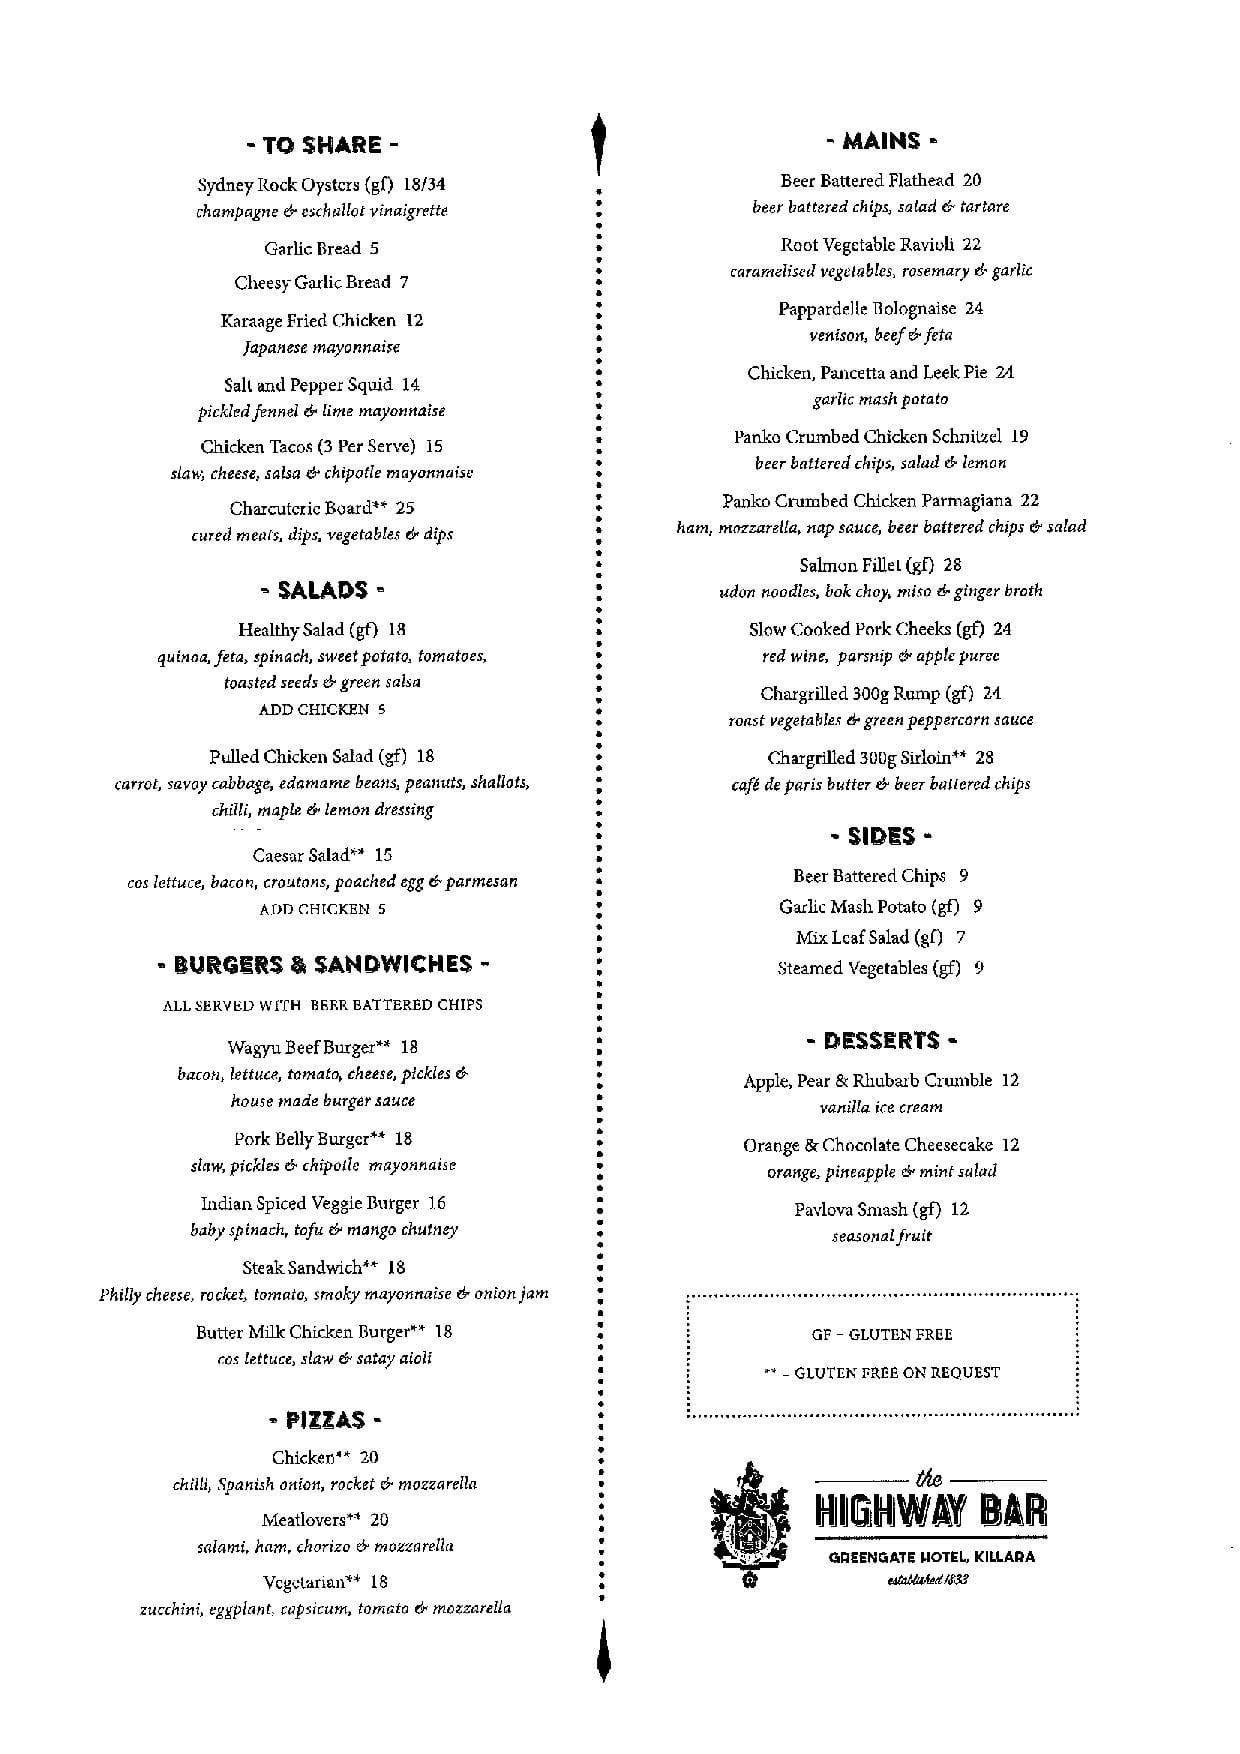 greengate hotel menu